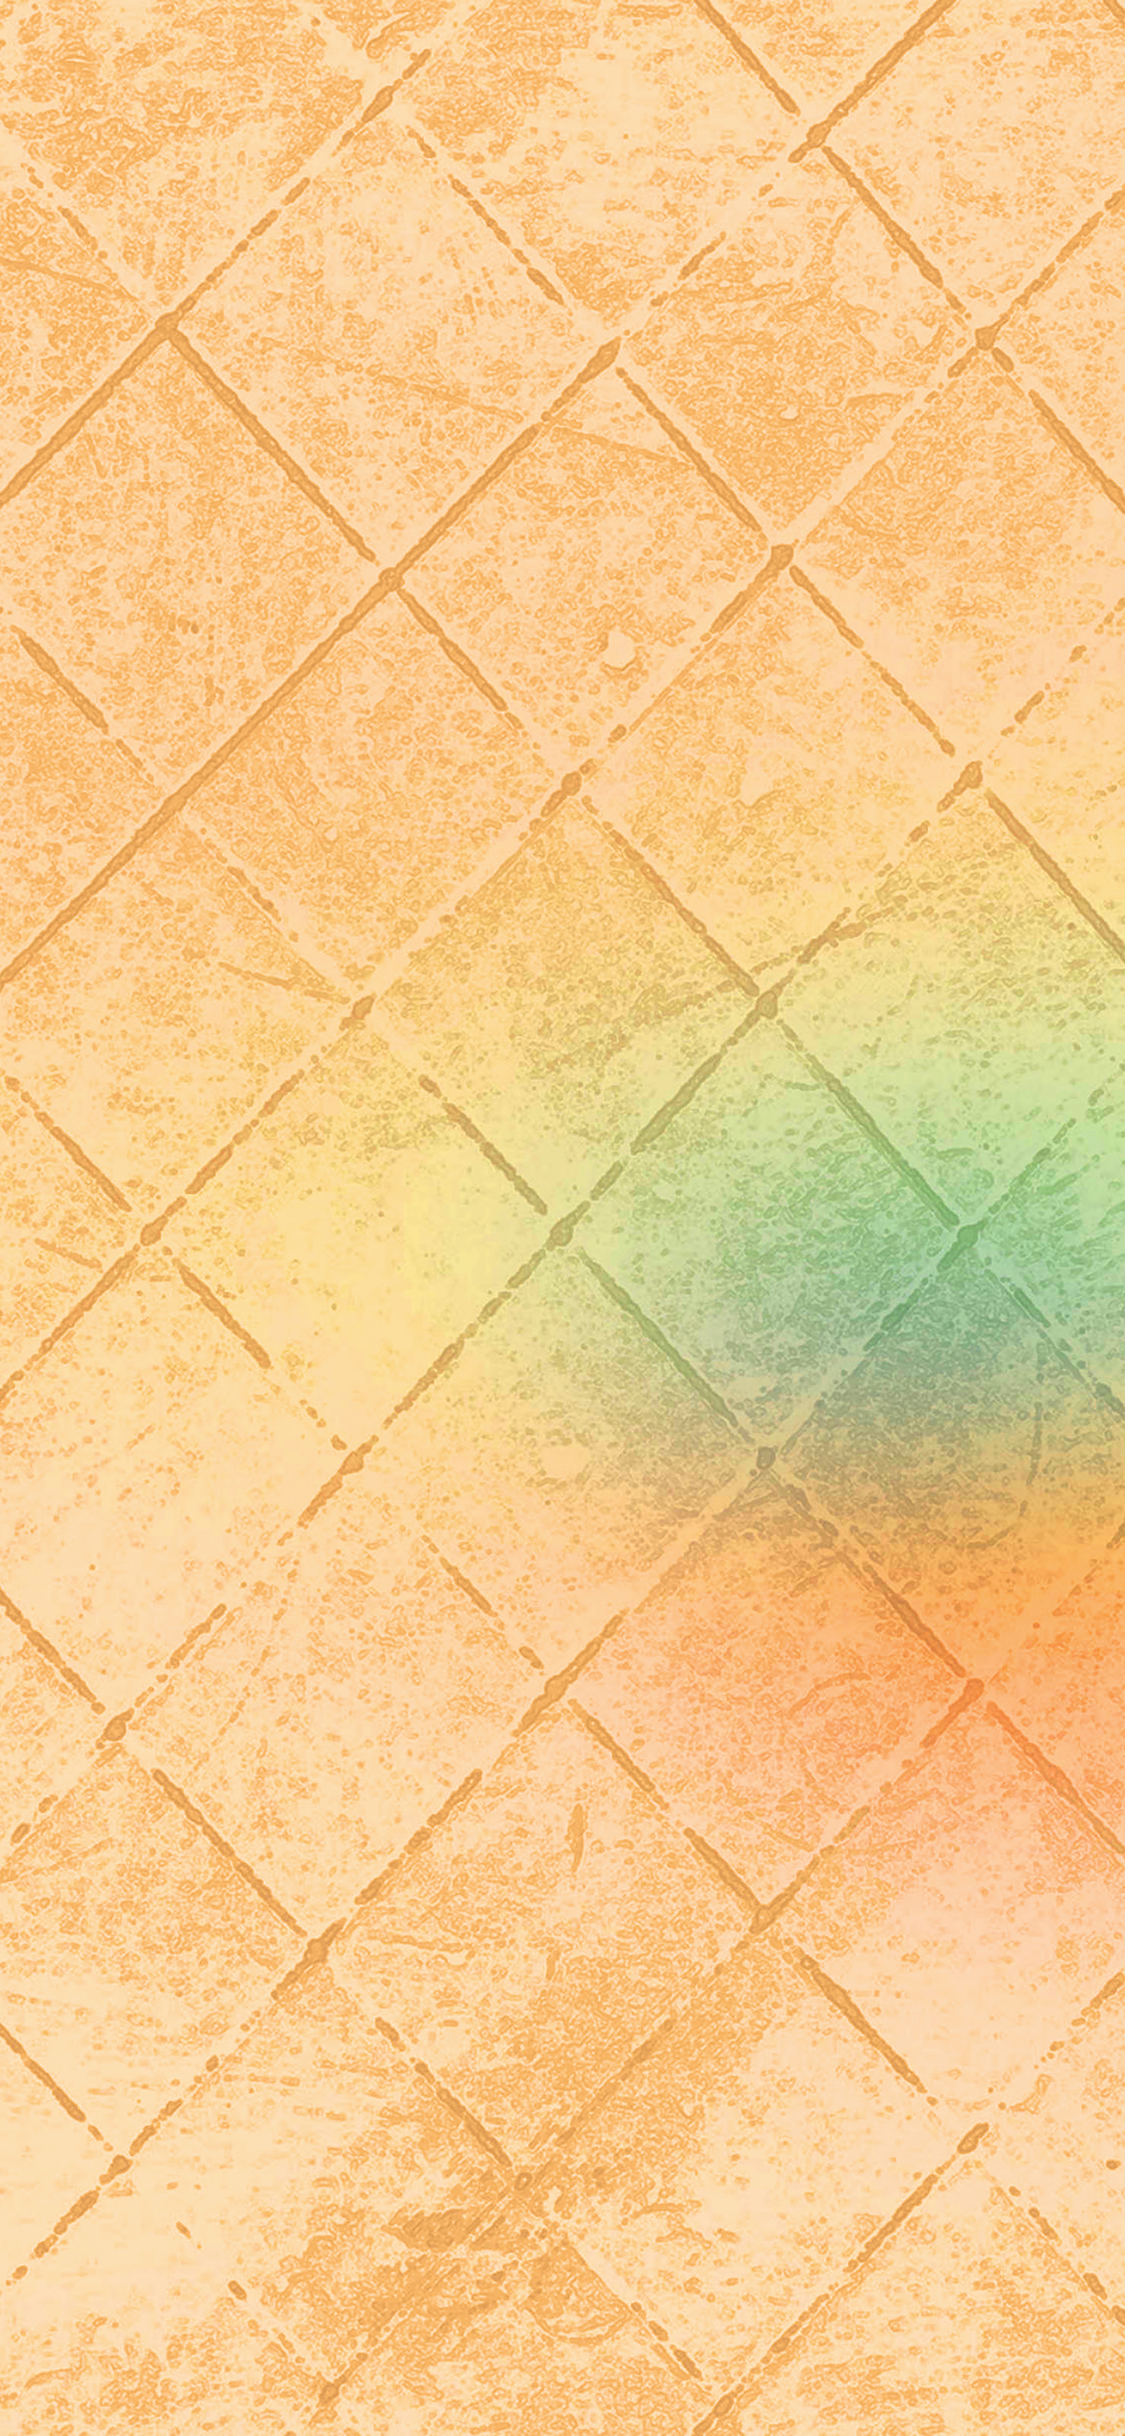 iPhoneXpapers.com-Apple-iPhone-wallpaper-vb78-wallpaper-gold-grunge-pattern